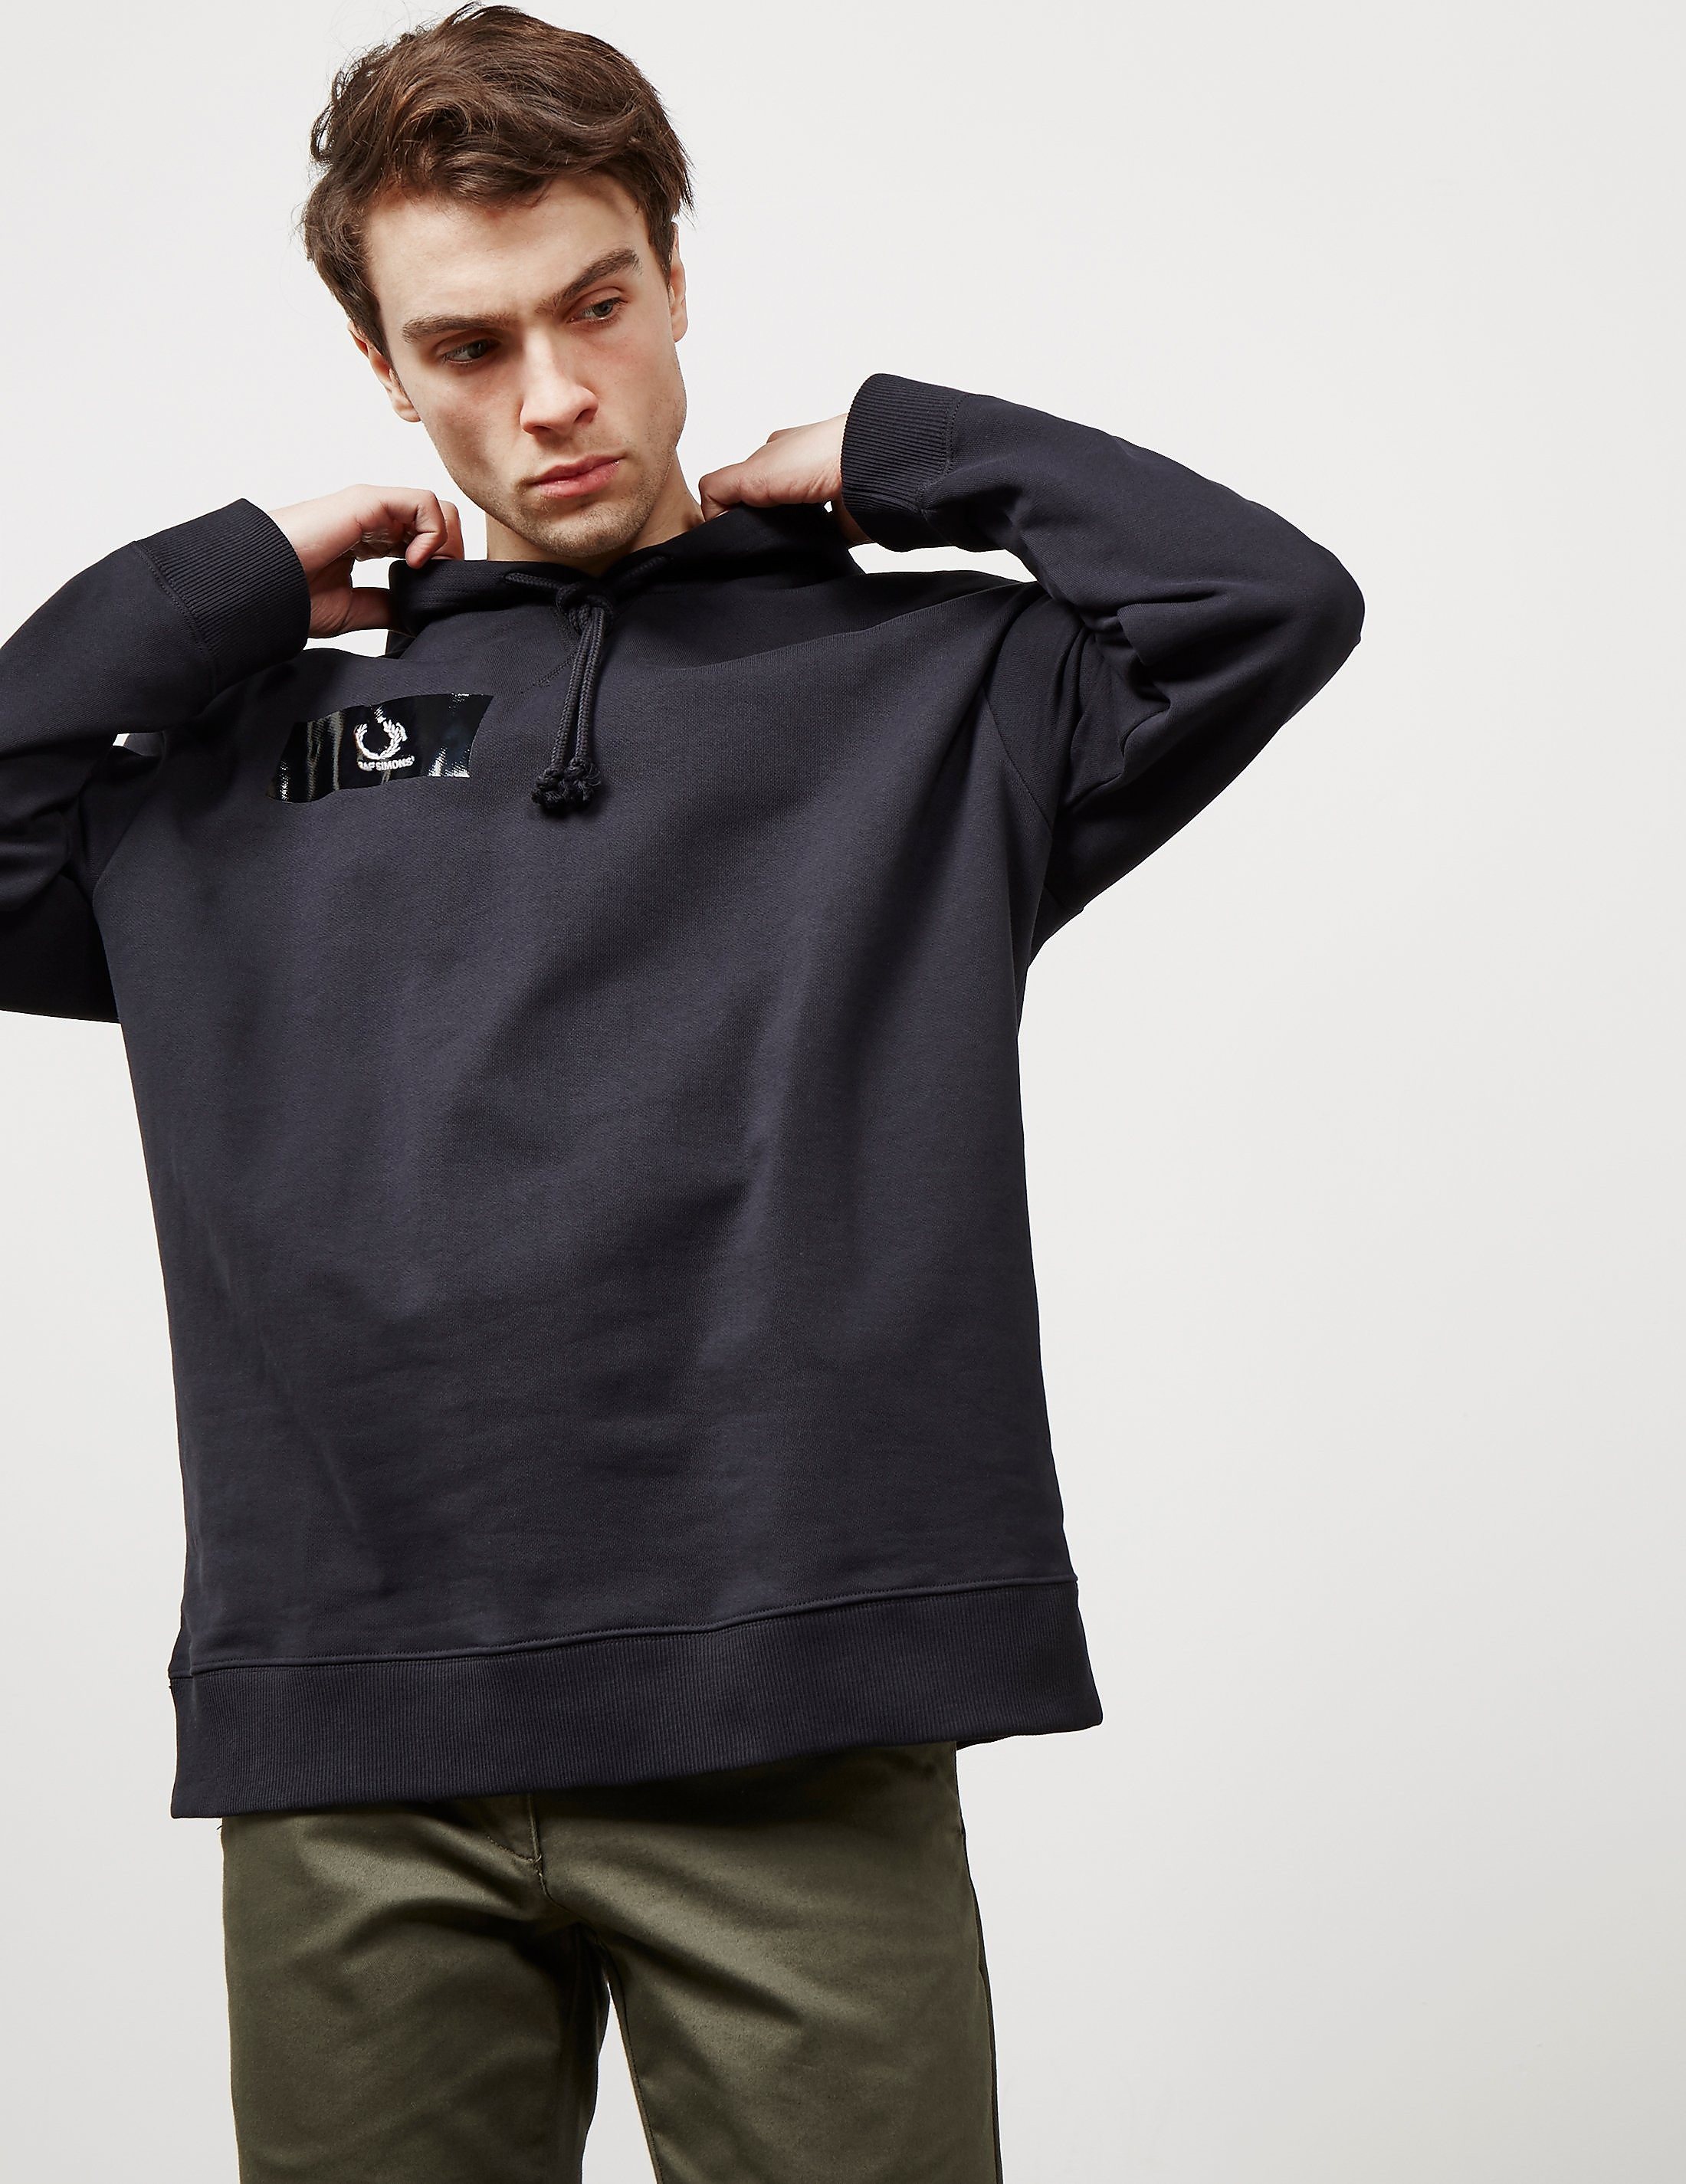 Fred Perry x Raf Simons Tape Hoodie - Online Exclusive